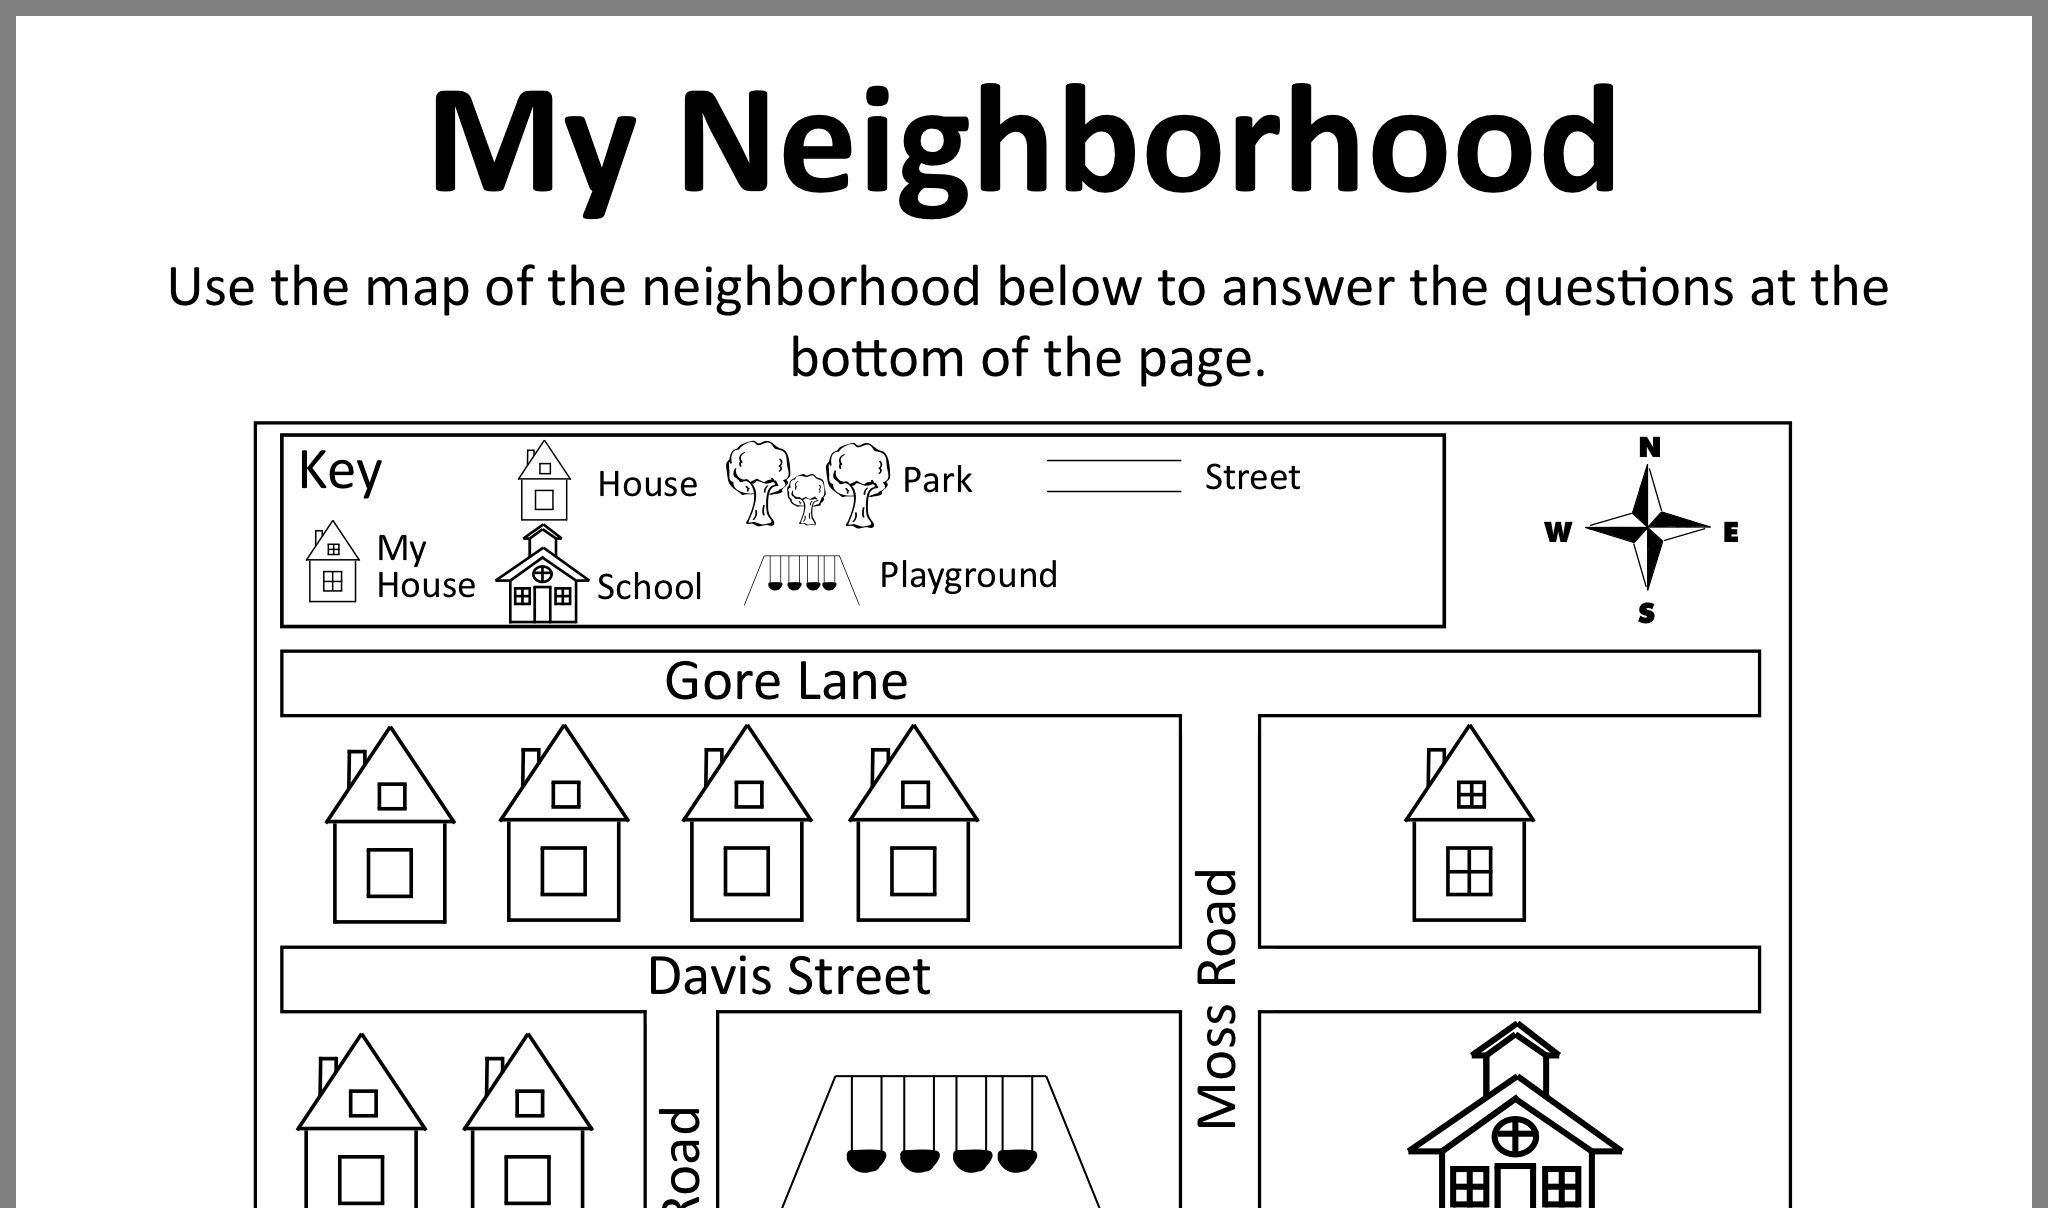 Pin By Andrea On Slp Life School Playground This Or That Questions Map [ 1208 x 2048 Pixel ]